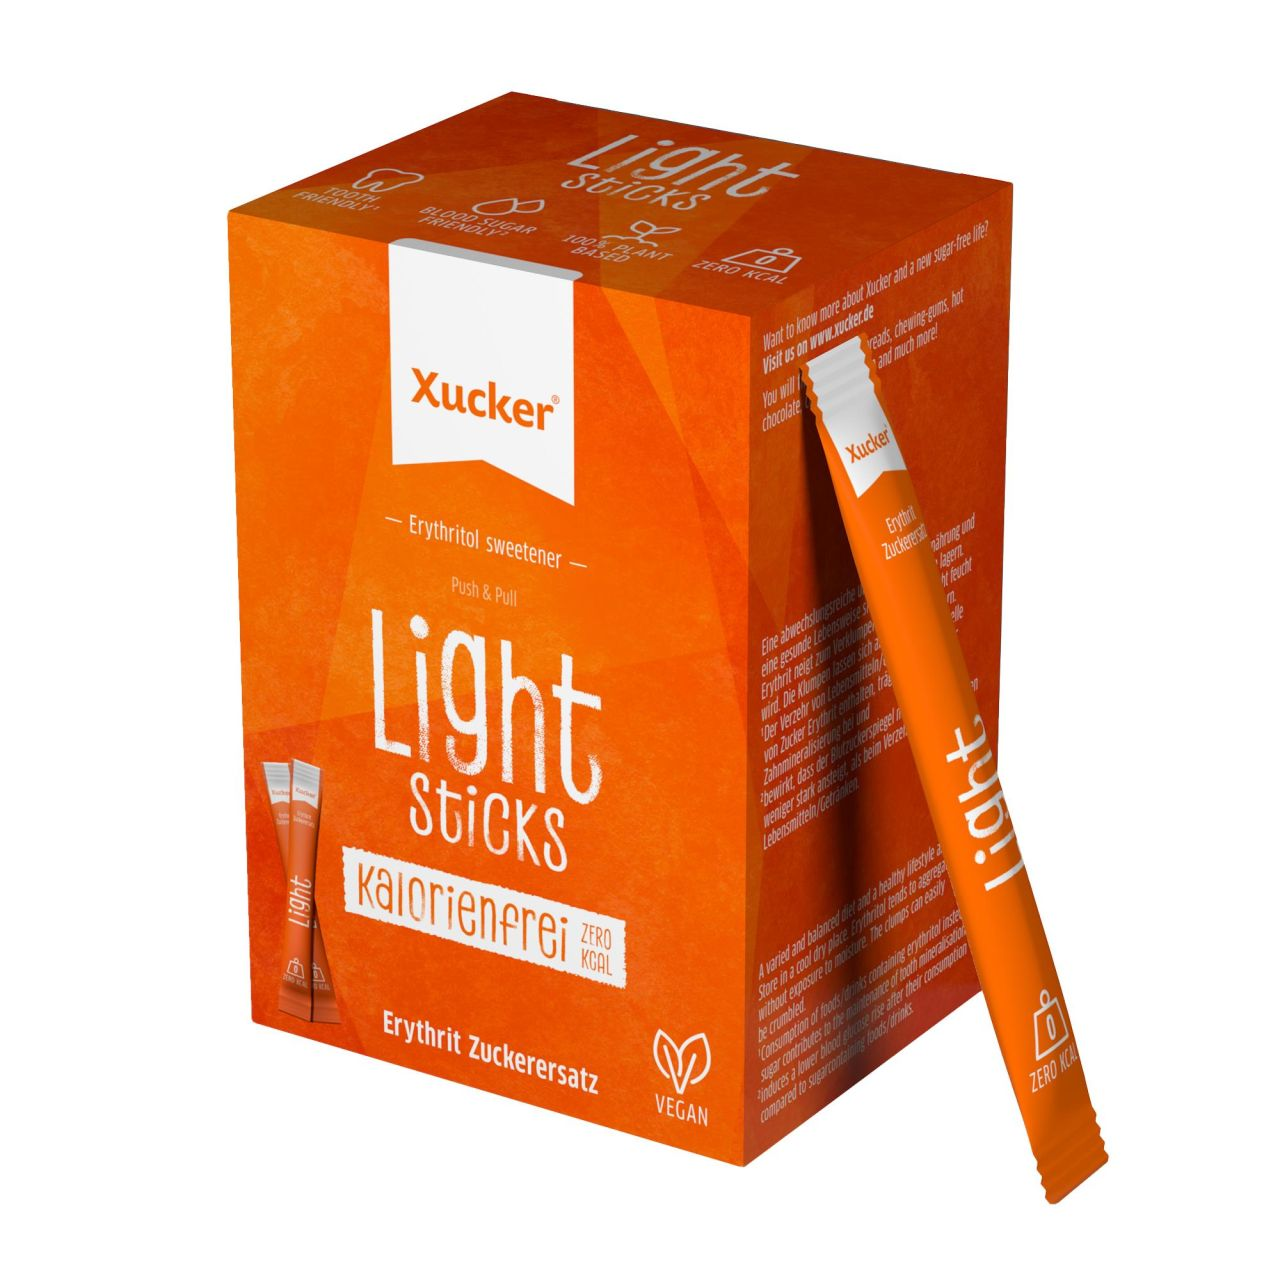 Xucker Light Sticks Schachtel (Erythrit) von Xucker